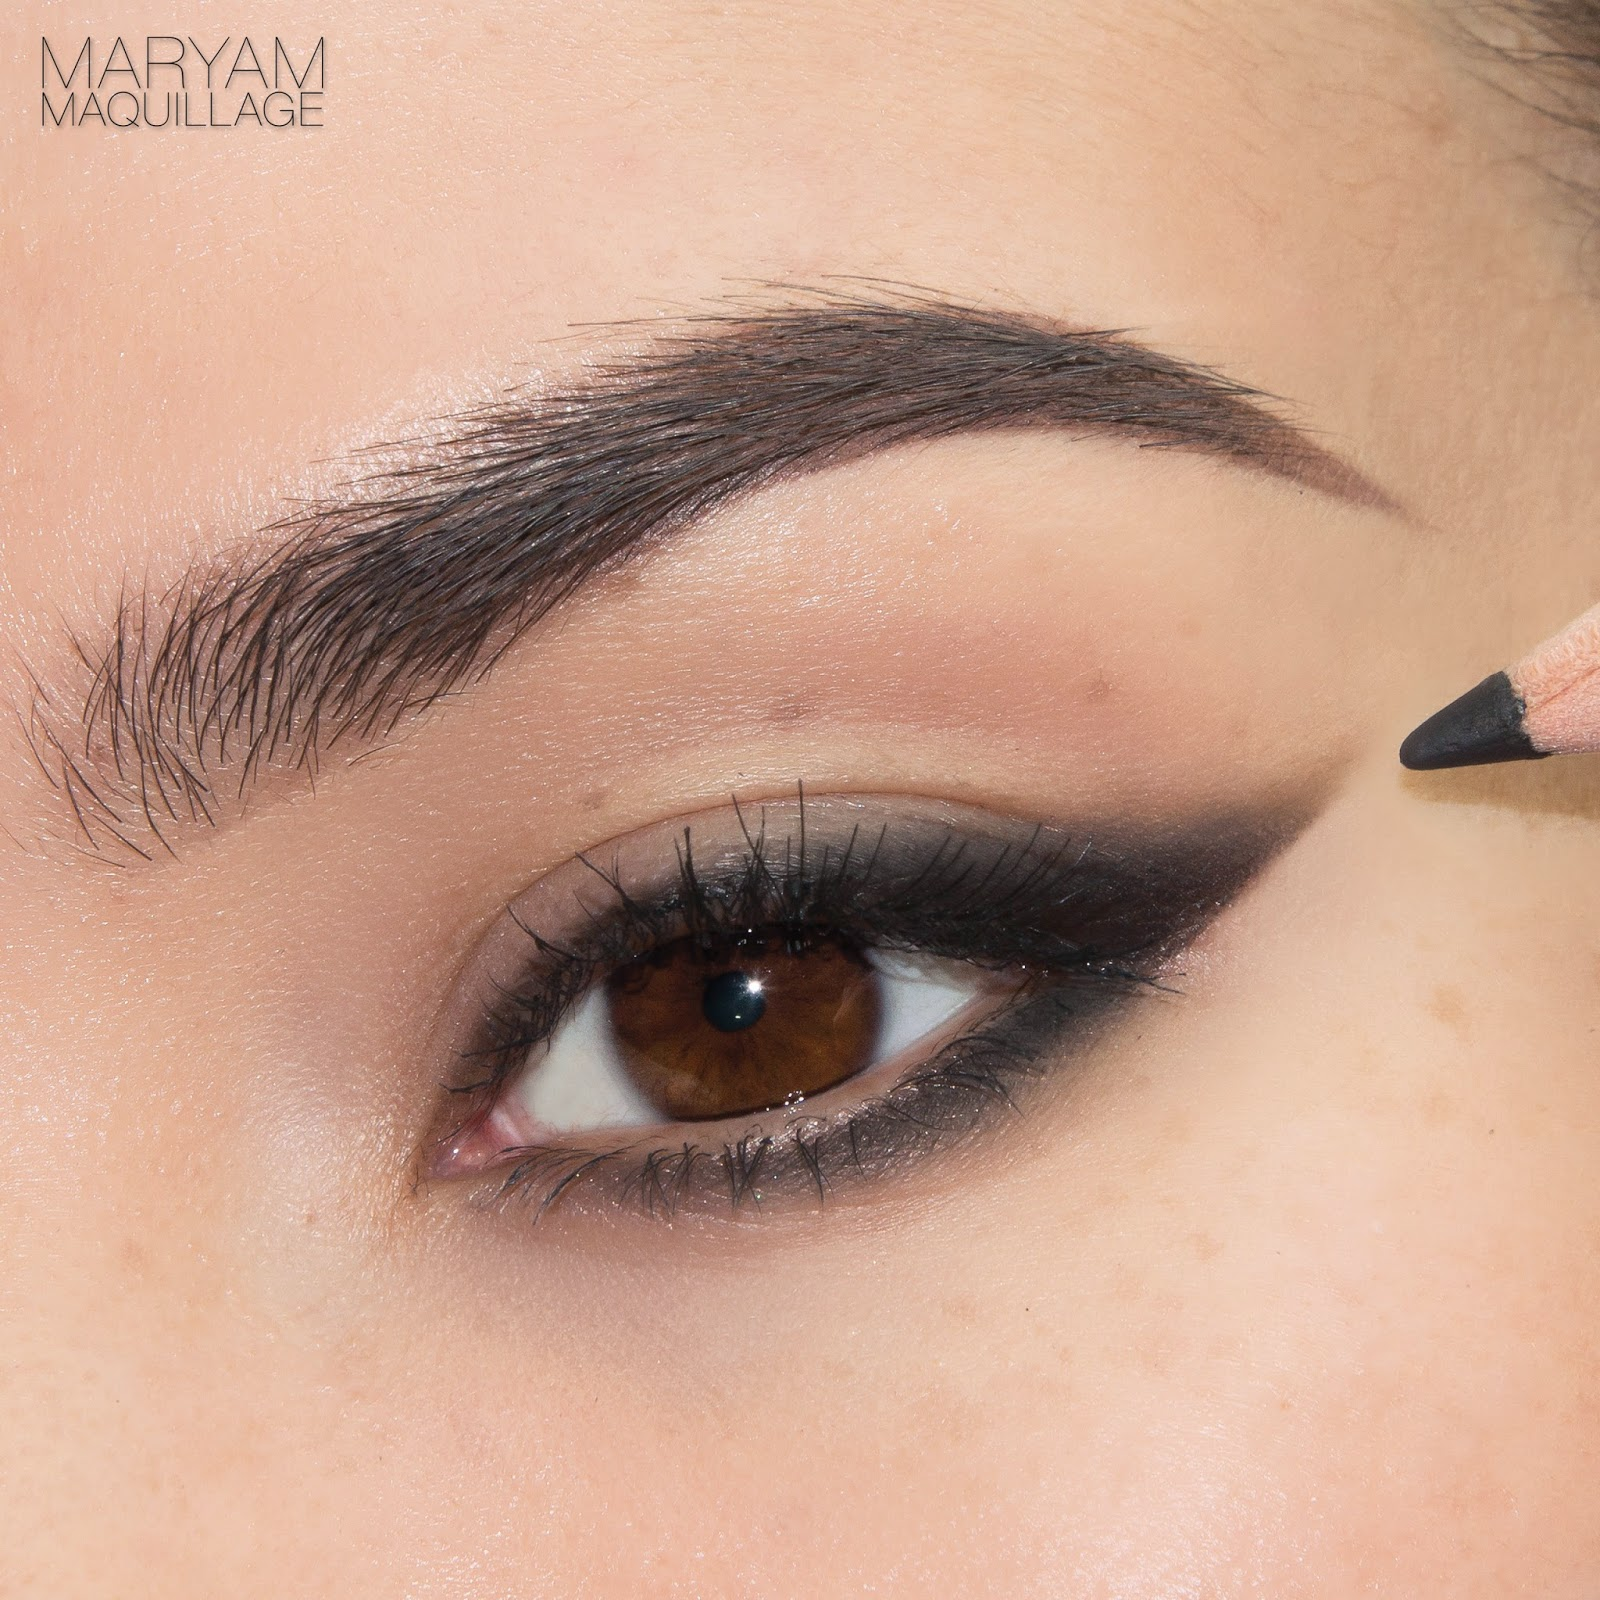 Maryam Maquillage Eyeliner Finder Four Liner Looks